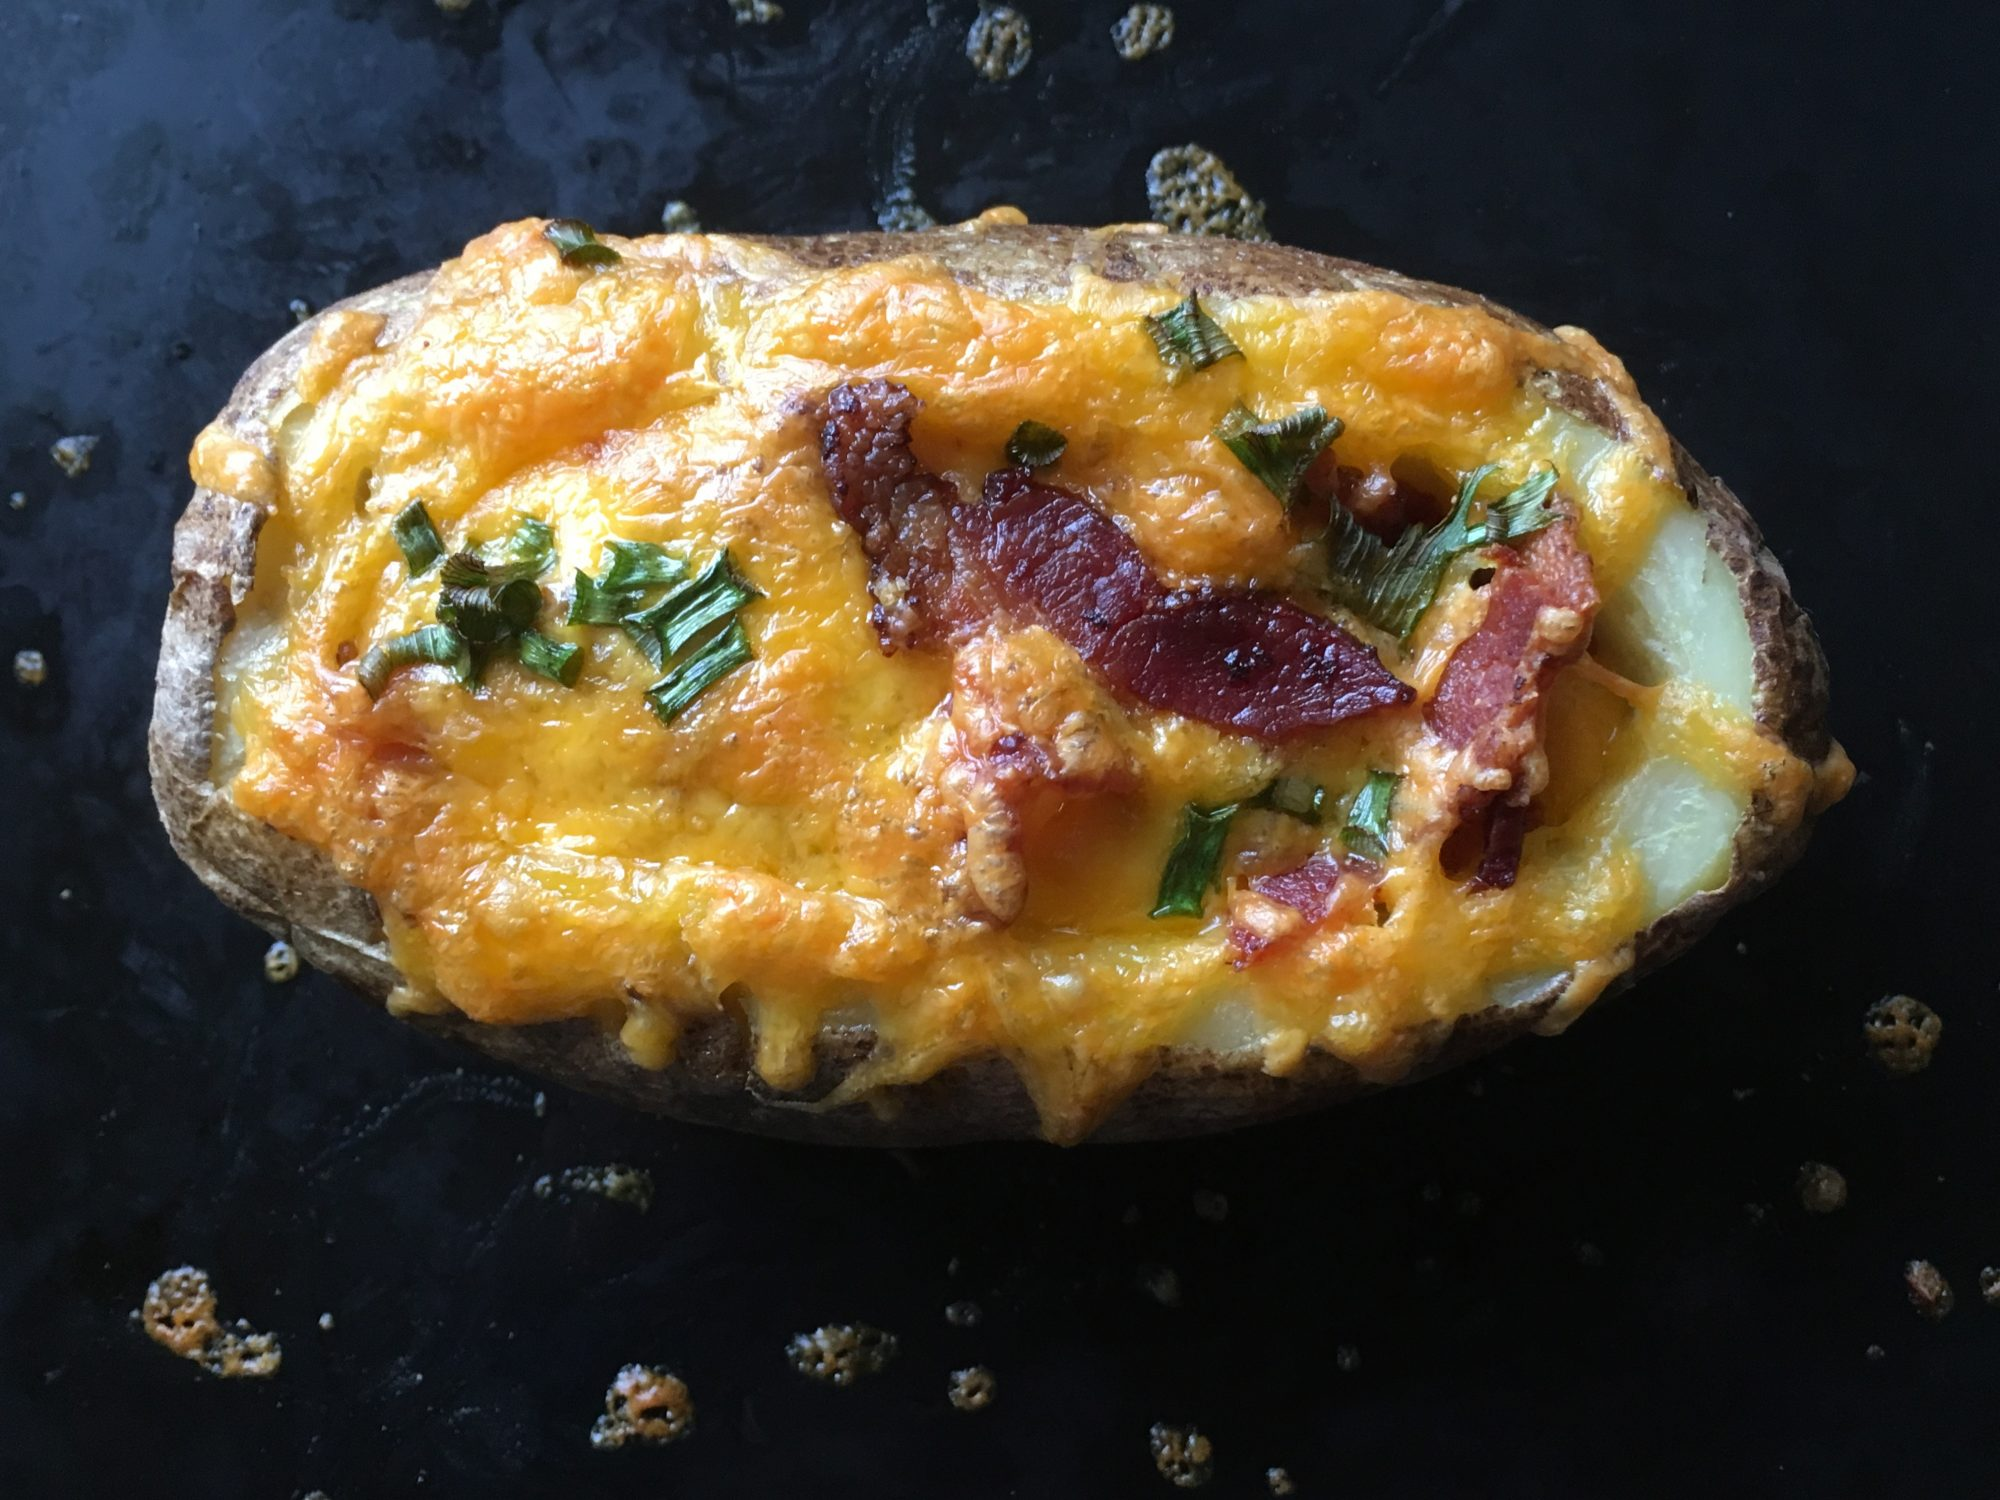 baked potato with bacon and egg baked in